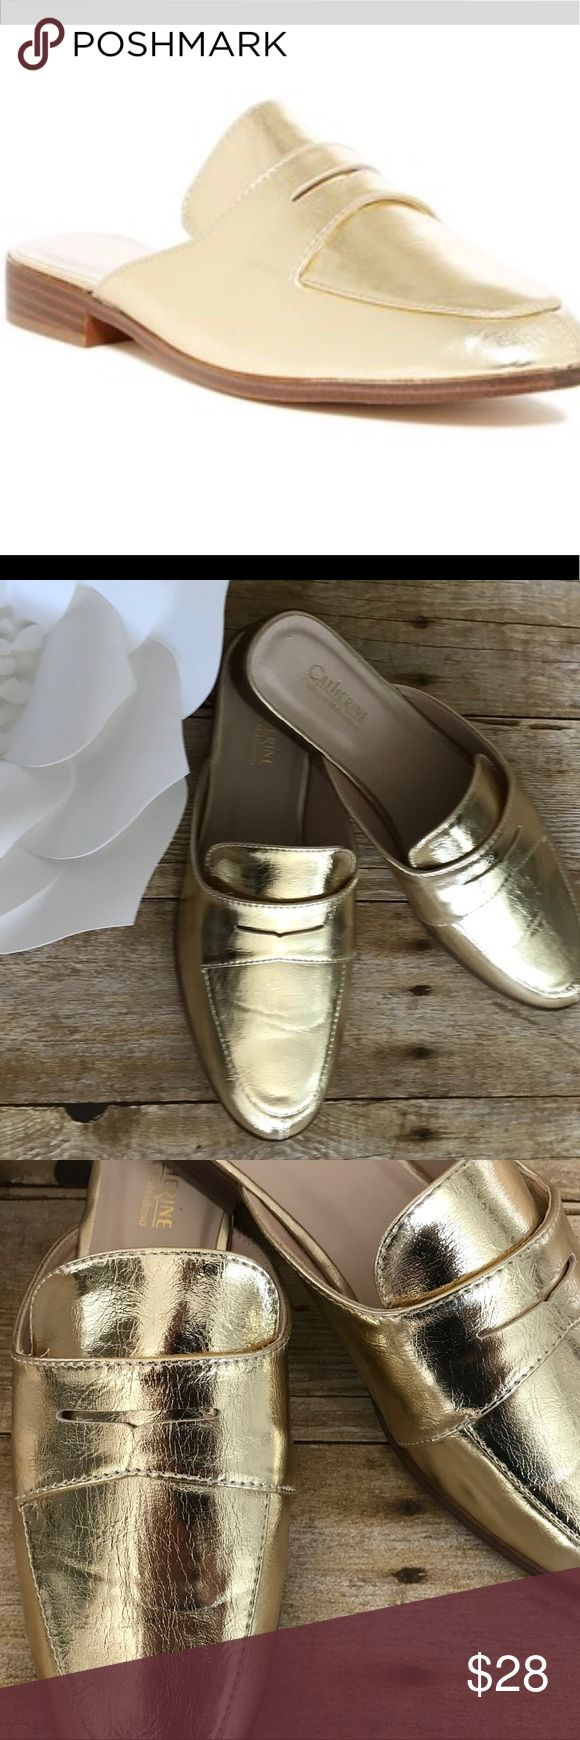 Catherine Malandrino Tuxedo mules 1 size left!!!! Catherine Malandrino Tuxedo Penny mules• crinkled gold• split moc-toe• banded vamp with penny slot•slip -on style • cushioned foot bed• low 7/8 in. Heel•Man-made materials• wear in the office or out of town• no trades• bundle for private discount Catherine Malandrino Shoes Mules & Clogs